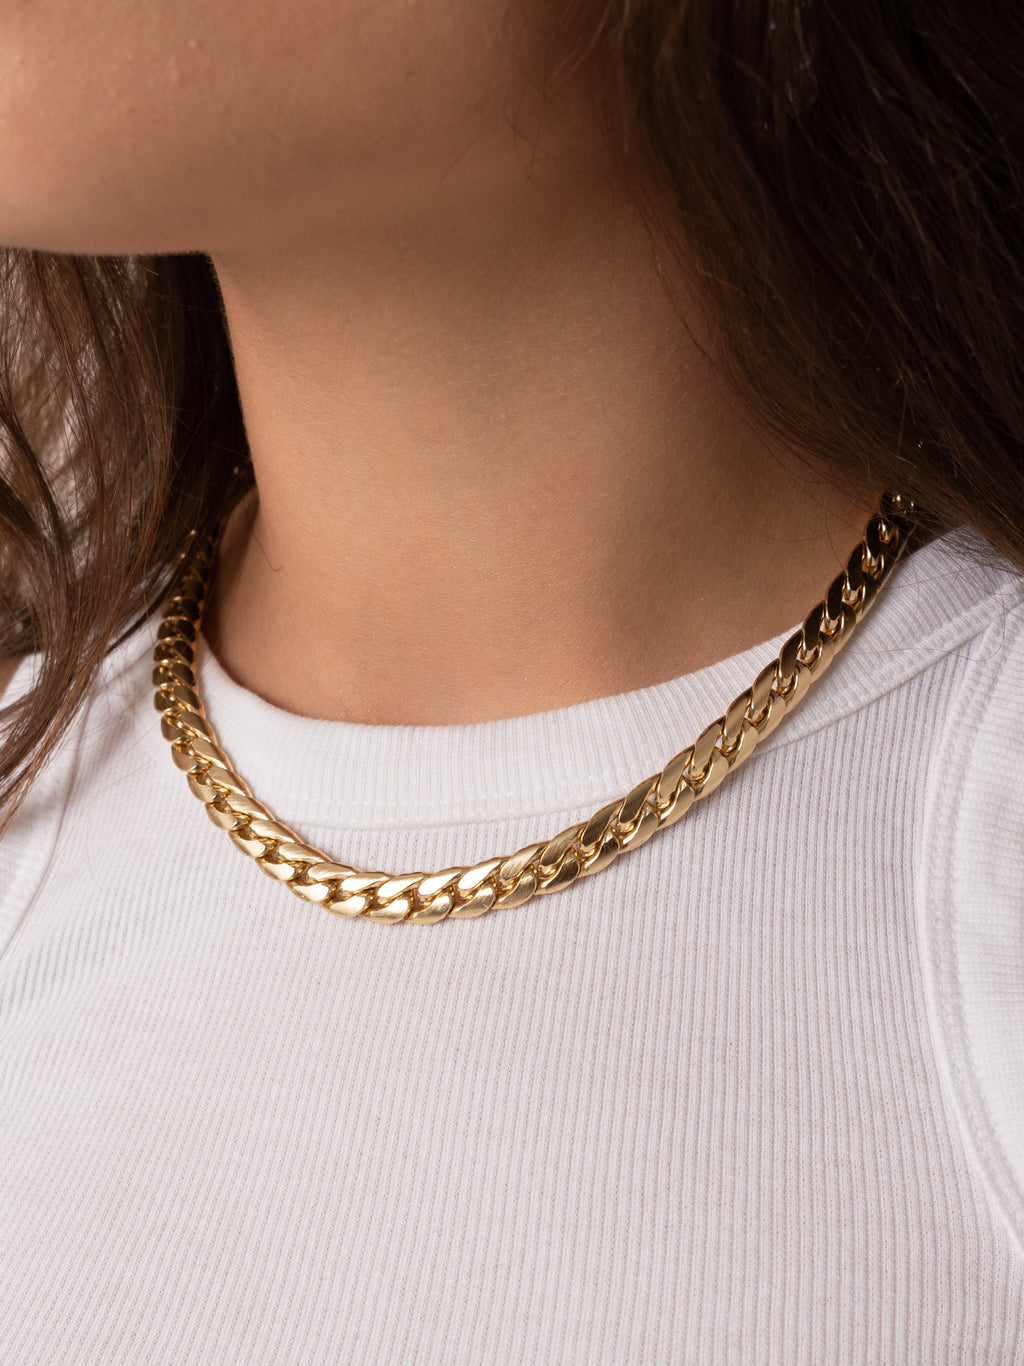 CHAIN // NECKLACE